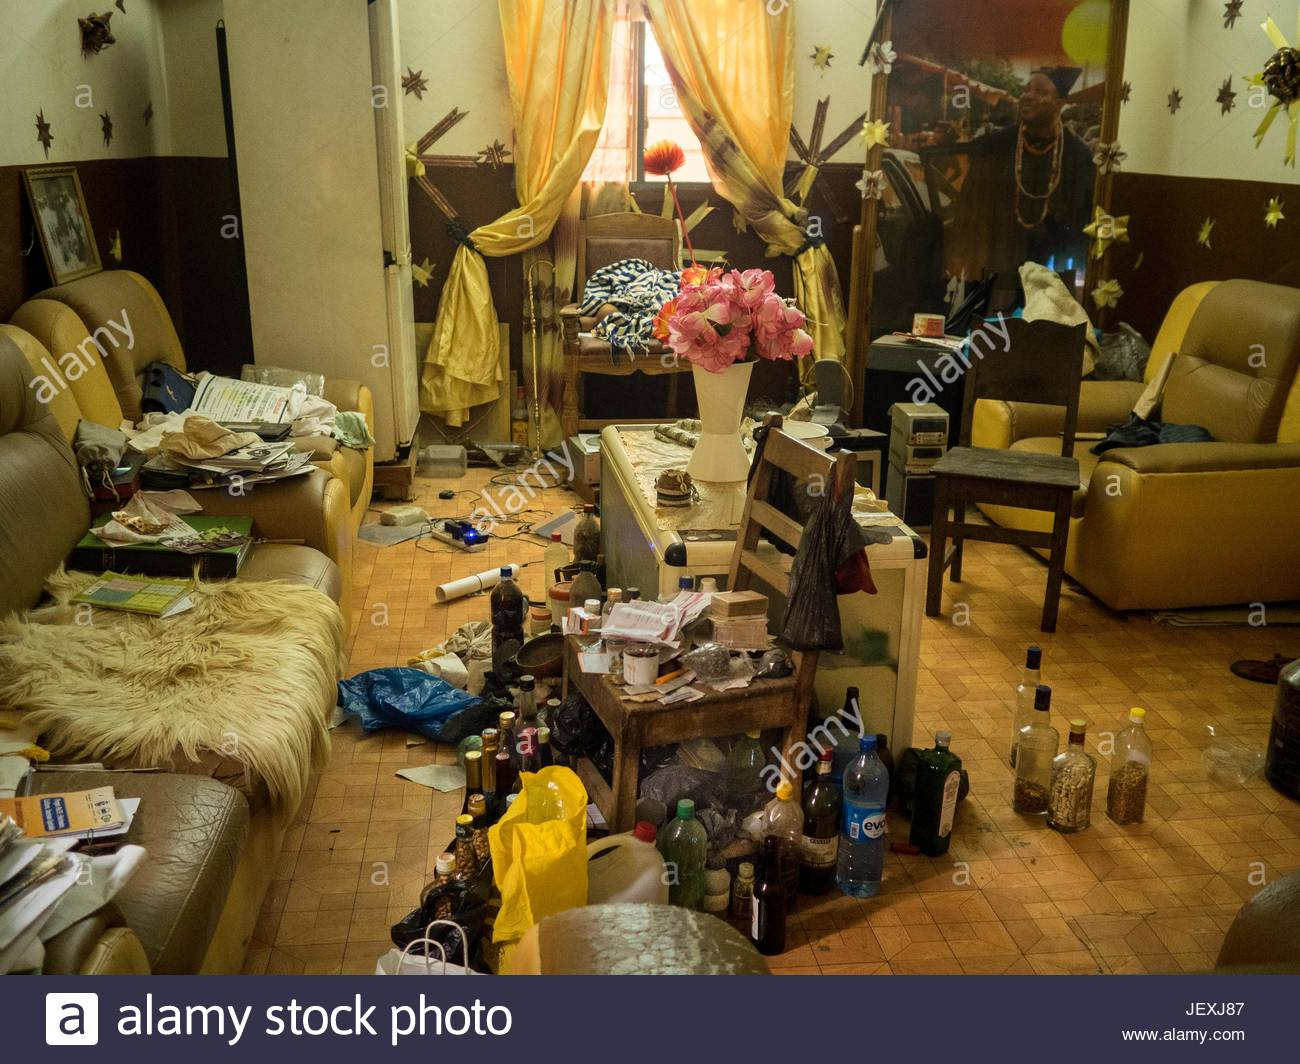 Voodoo King Akplogan's apartment with traditional medicines everywhere. - Stock Image